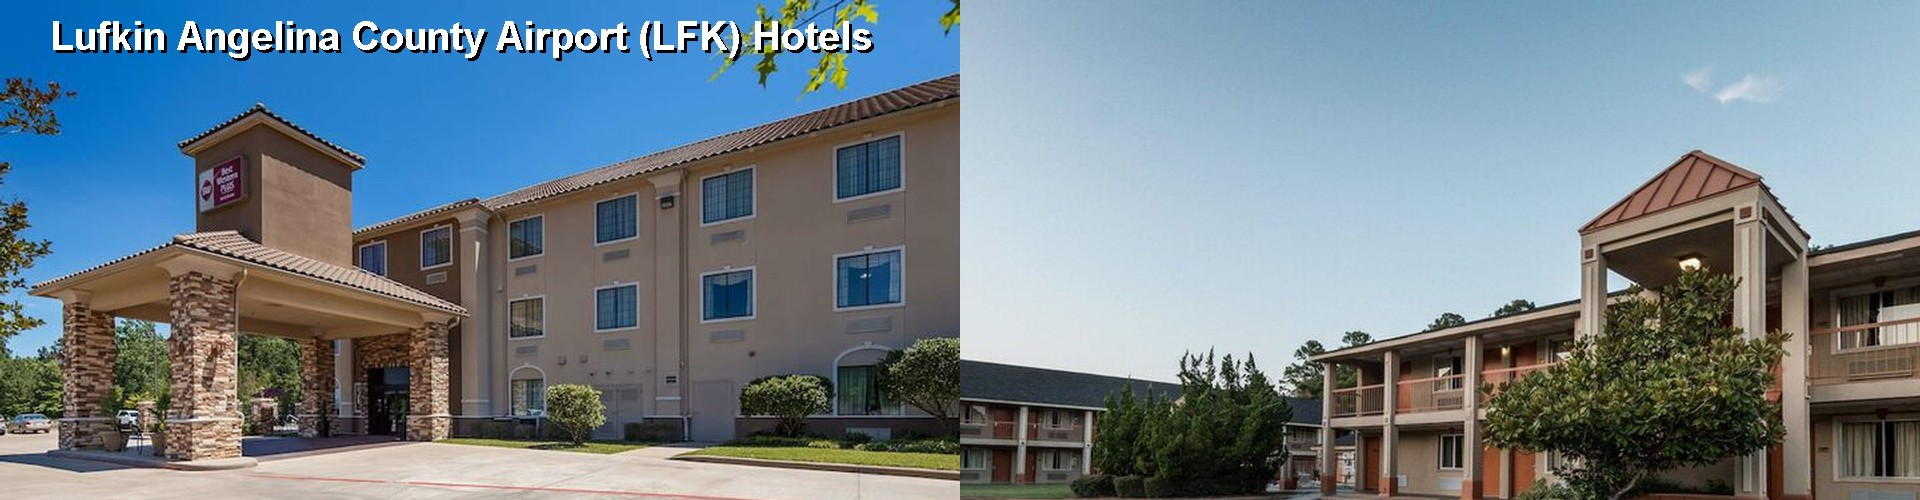 5 Best Hotels near Lufkin Angelina County Airport (LFK)